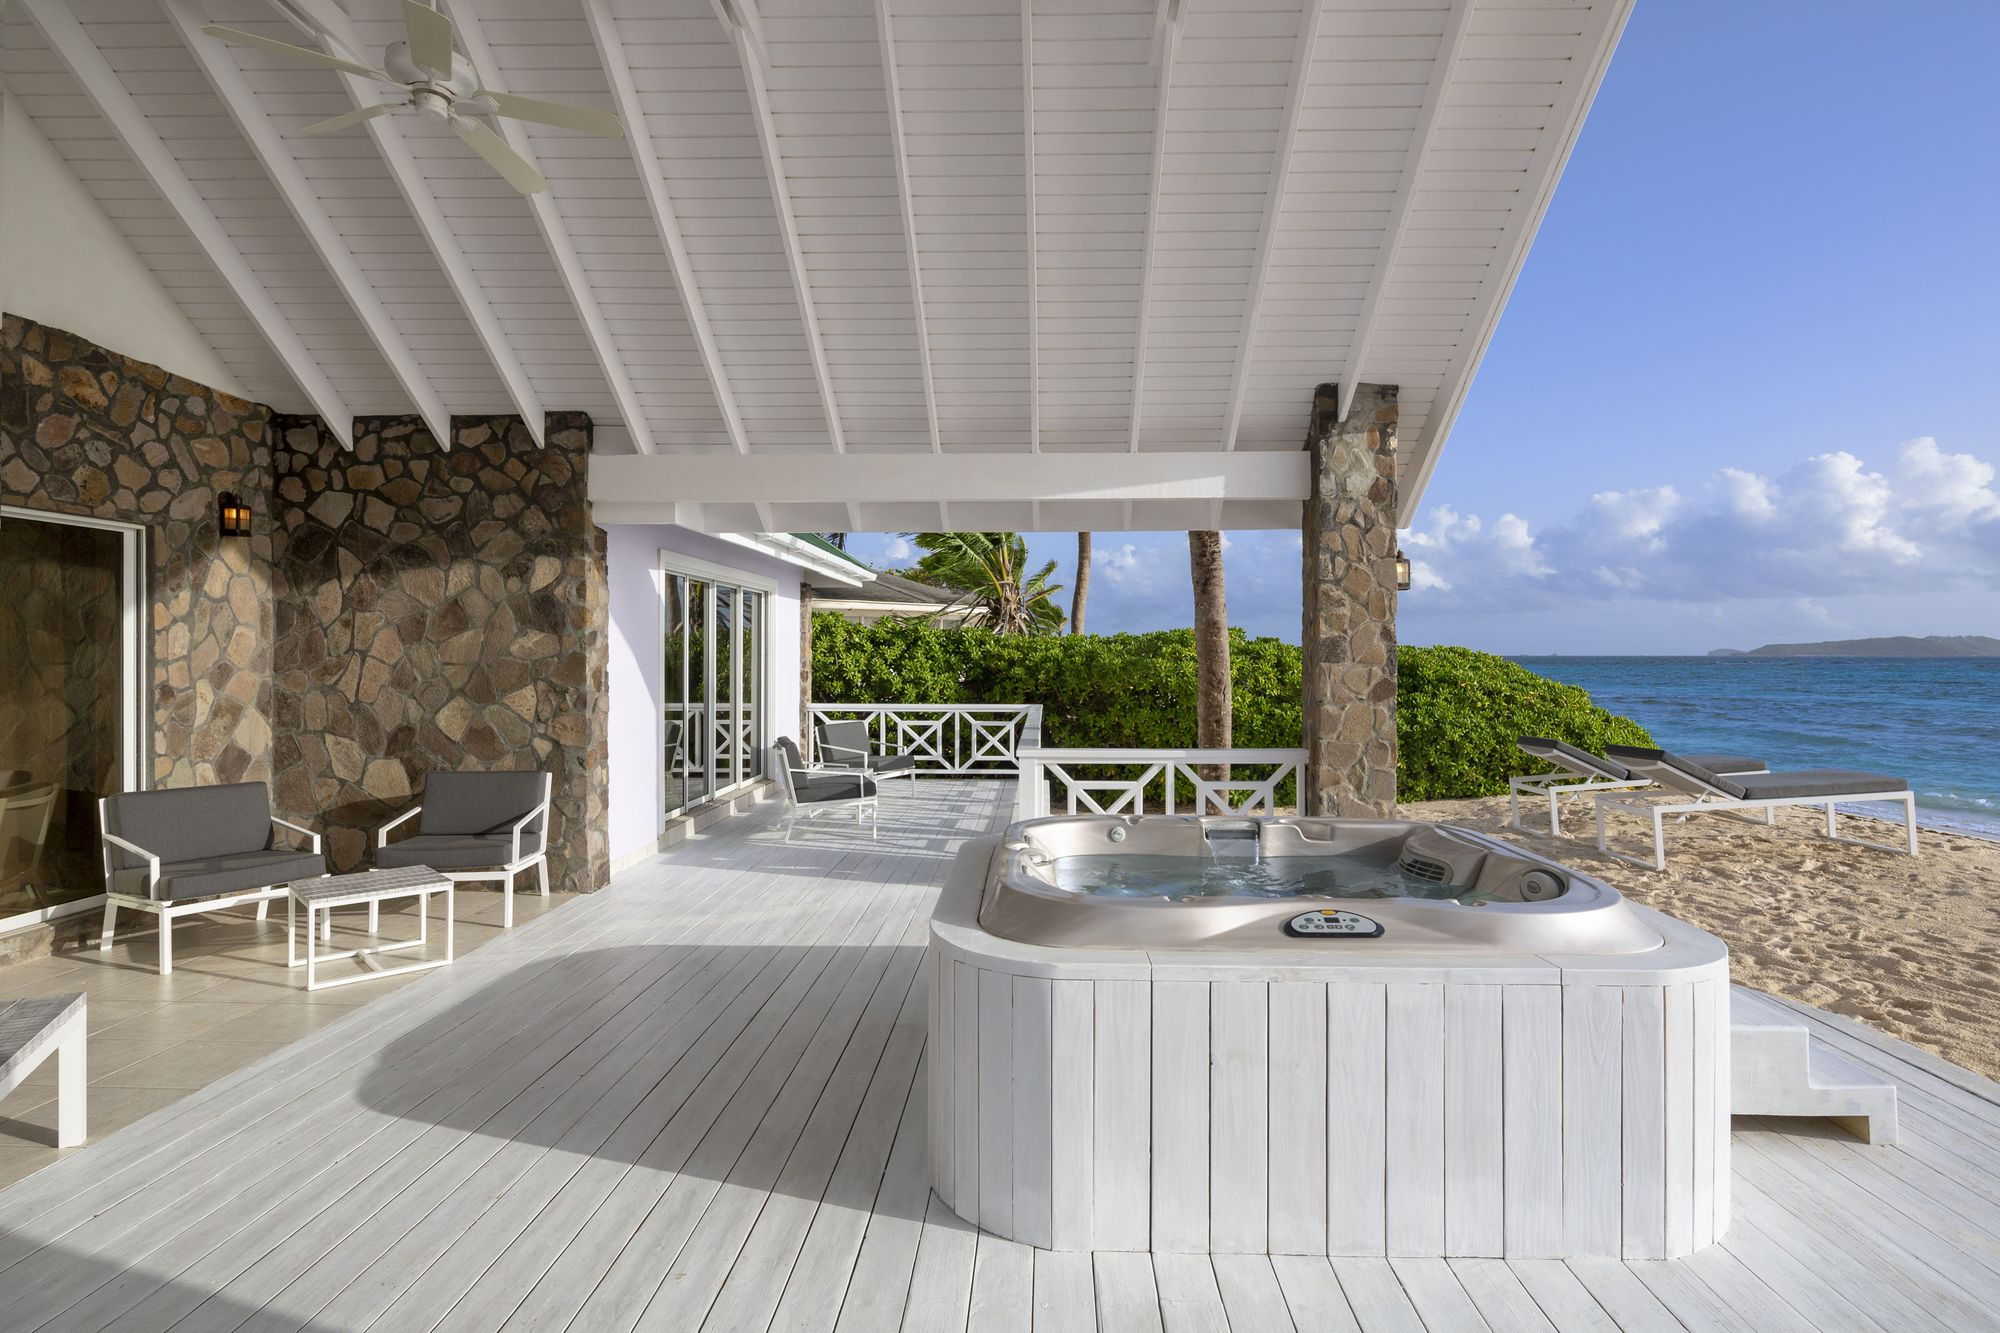 Seafeather patio at Palm Island Resort & Spa with hot tub on the beach